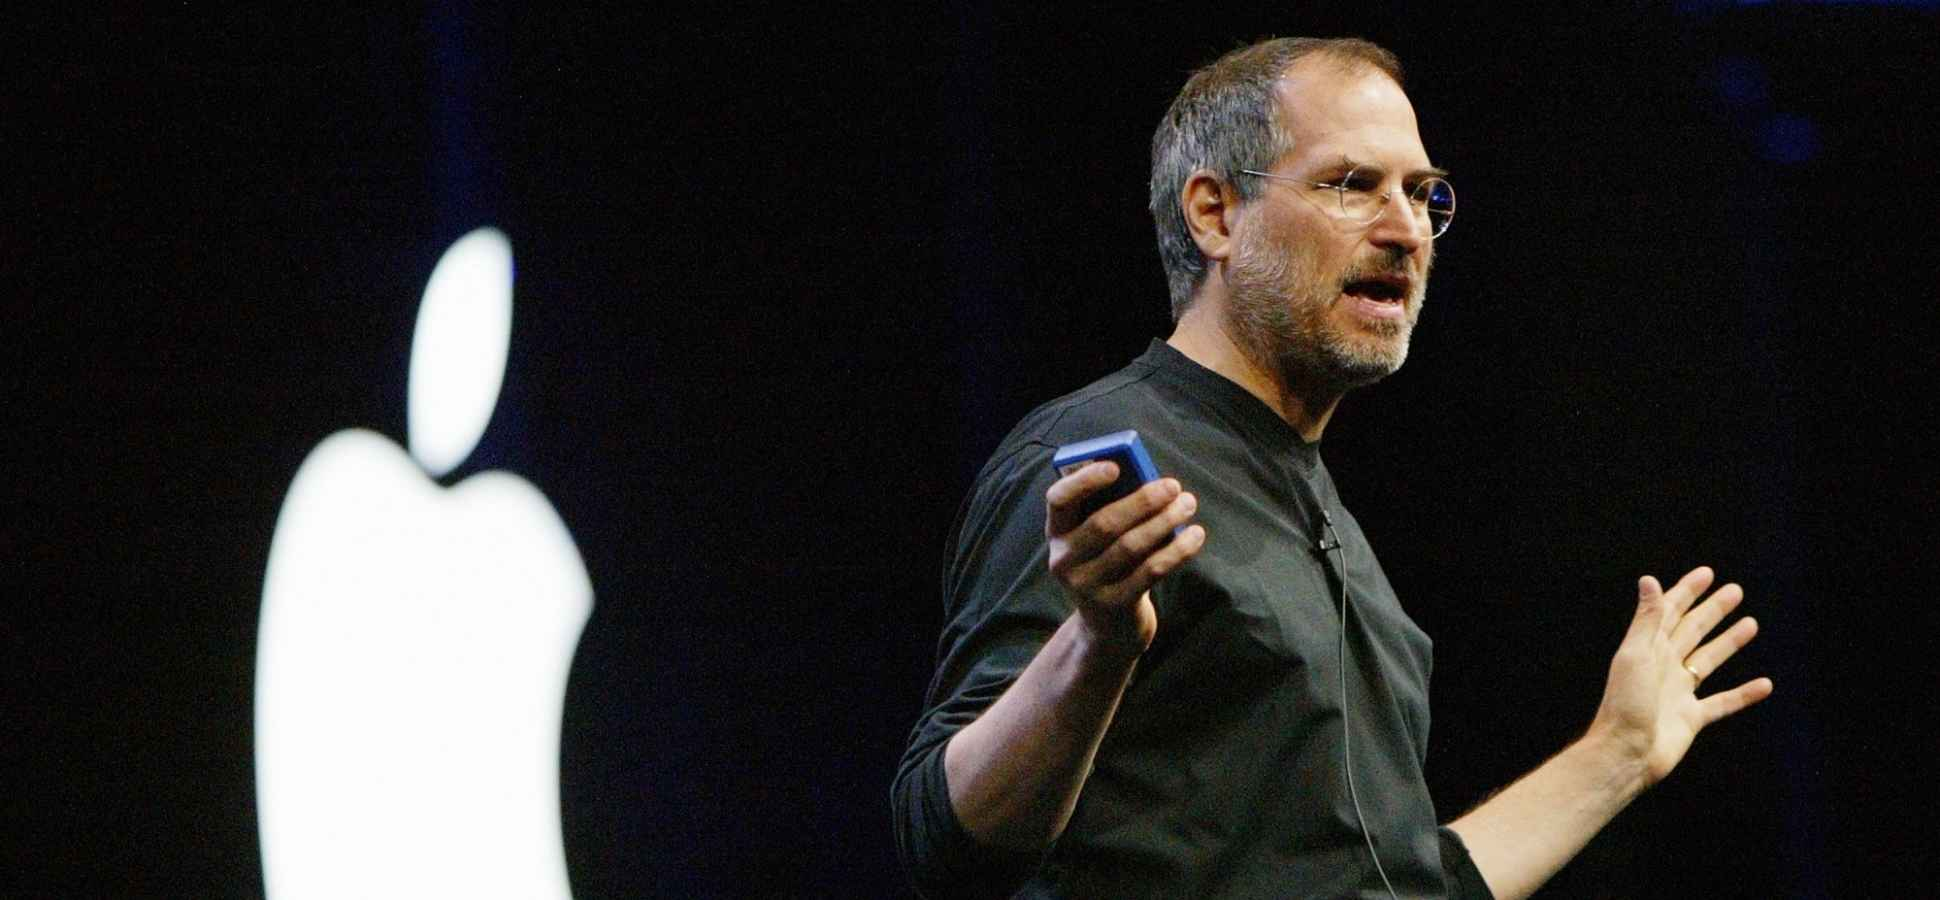 Follow These 4 Simple Rules from Elon Musk and Steve Jobs to Protect Your Ideas